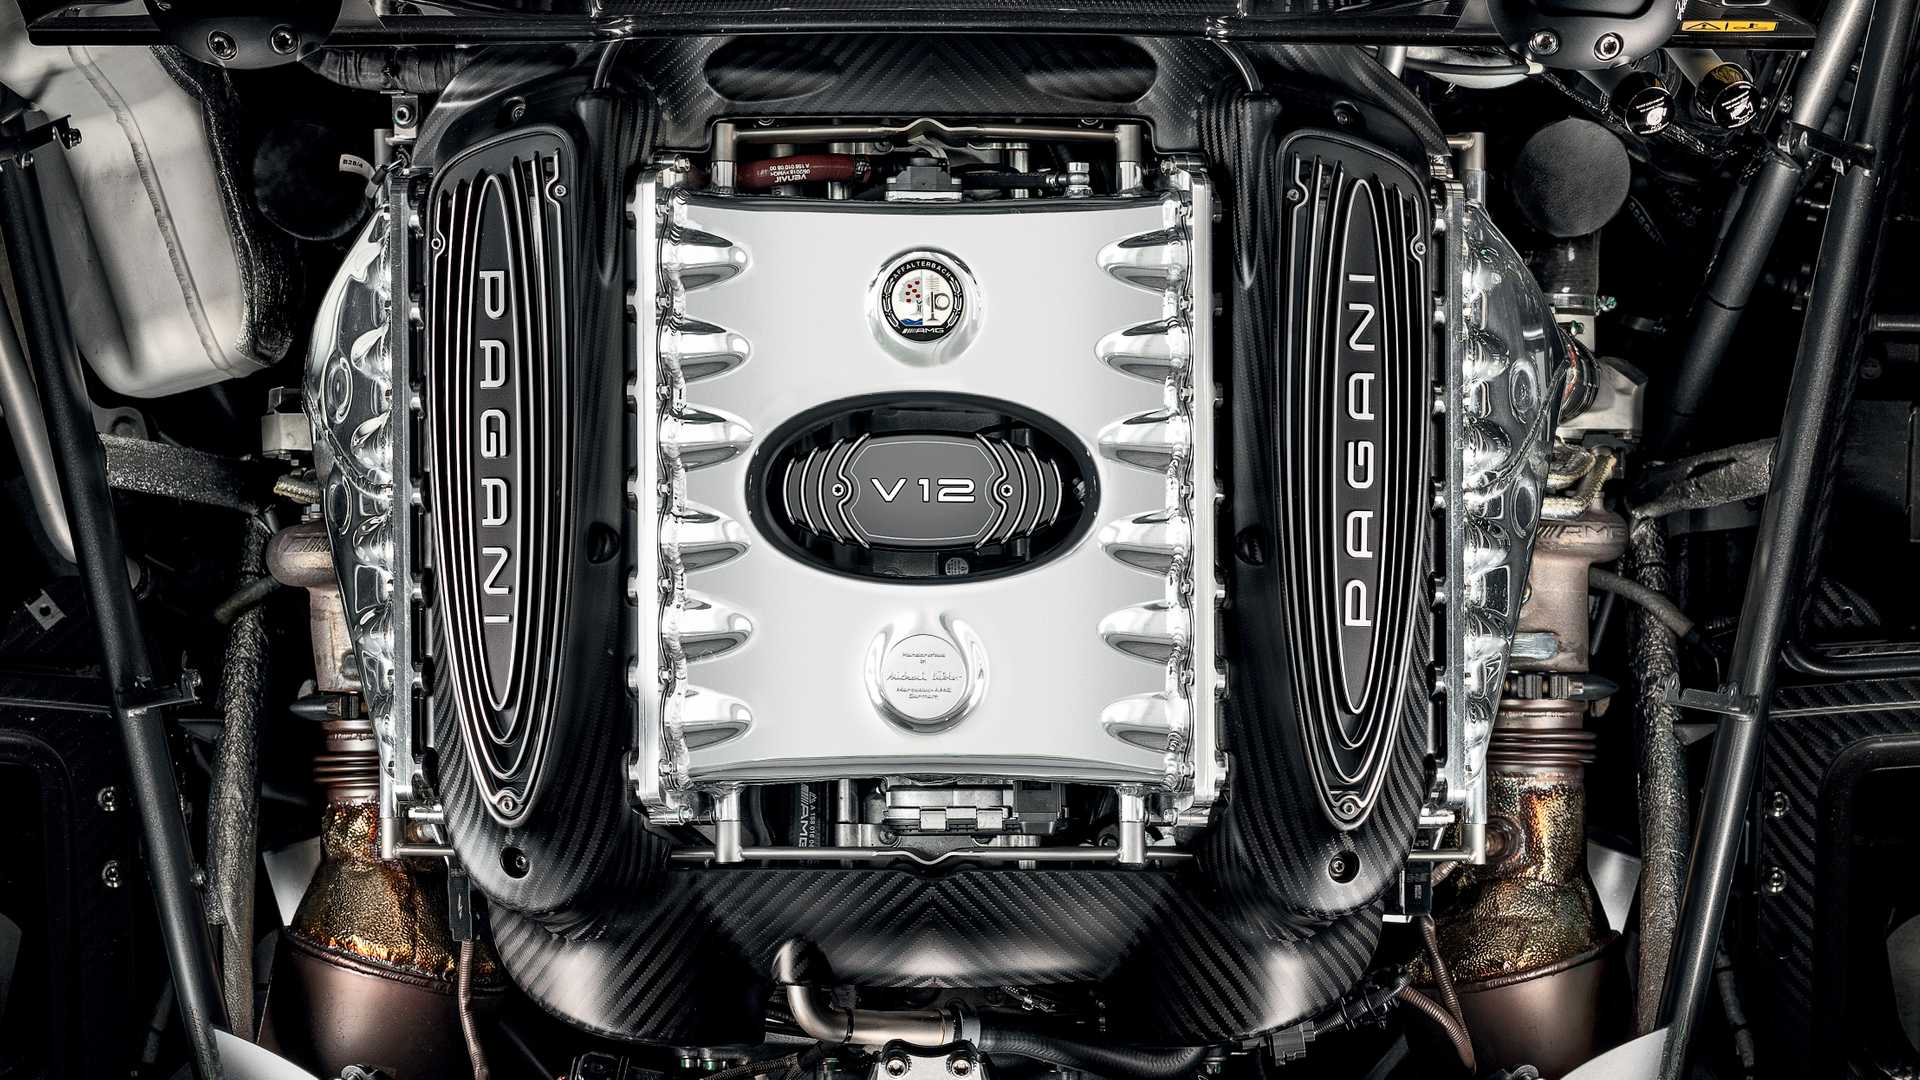 Pagani To Use Updated Amg Twin Turbo V12 Engine Until 2026